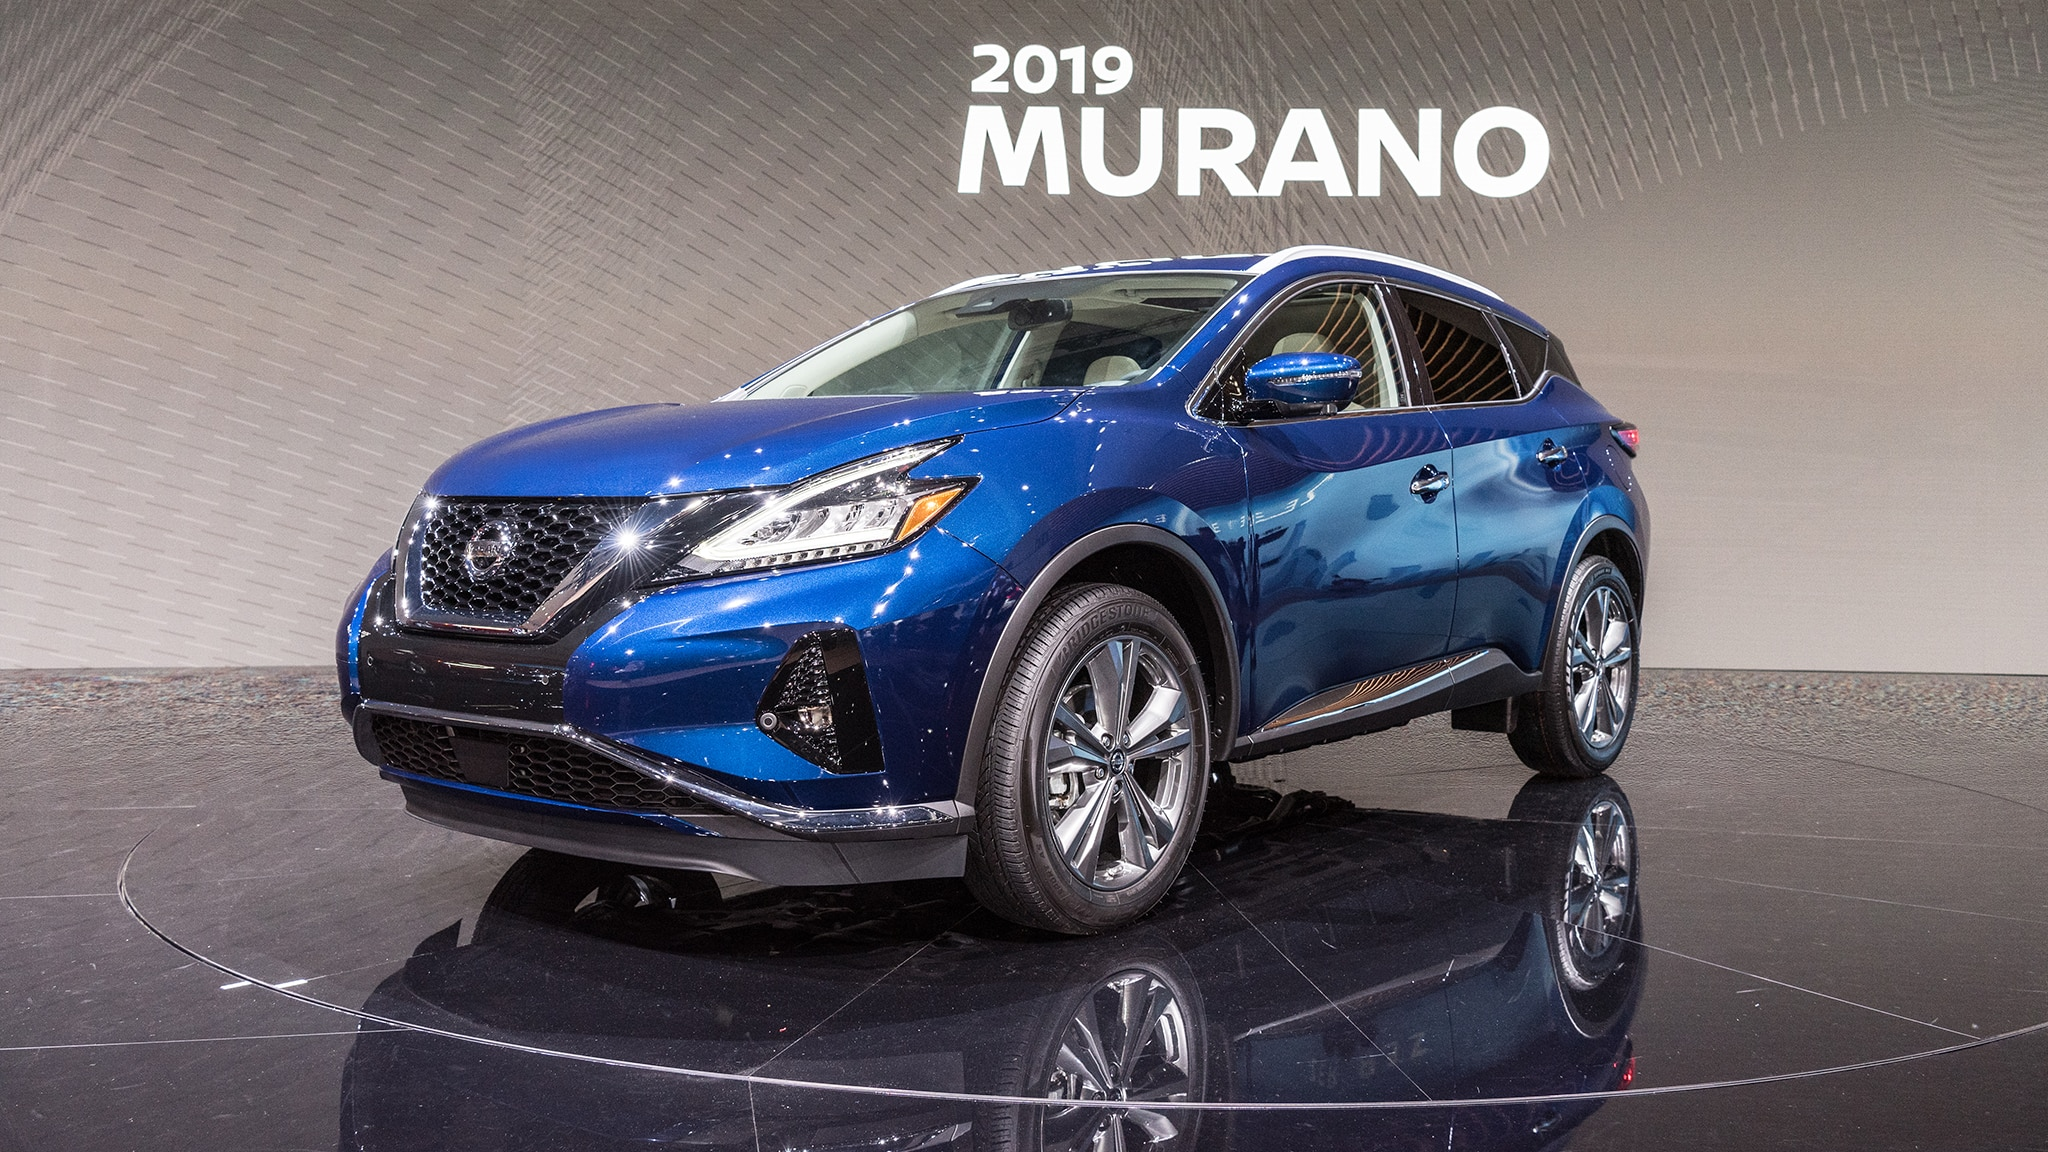 2019 nissan murano is refreshed with more tech and updated styling